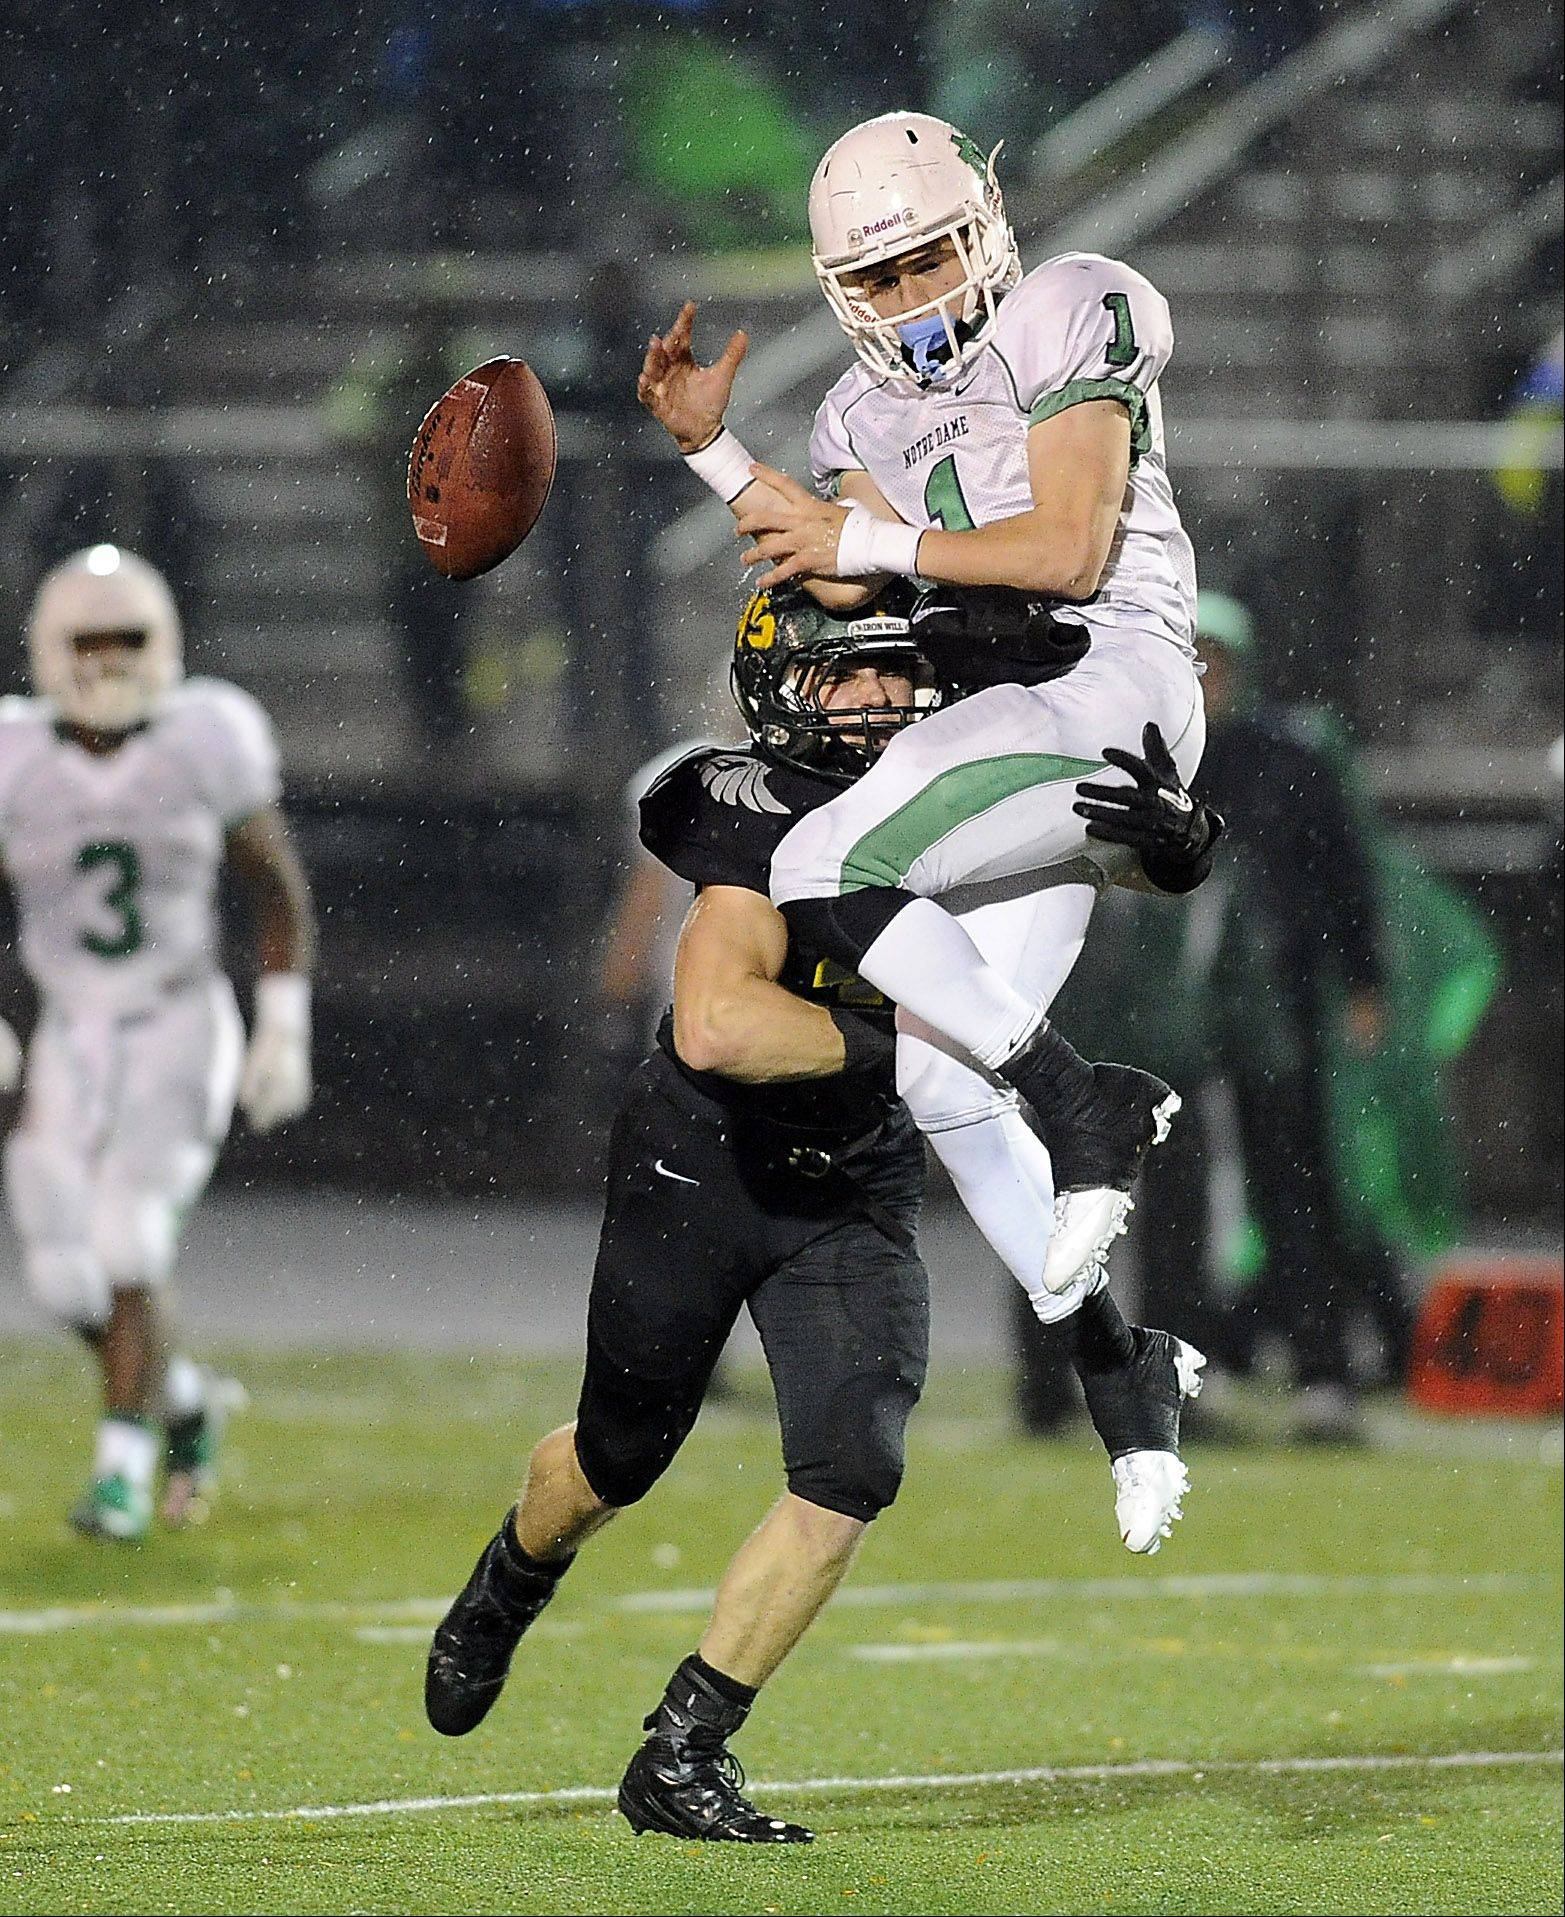 Fremd's Stephen Walsh breaks up a pass play against Notre Dame's Pat Cravens in the first half.